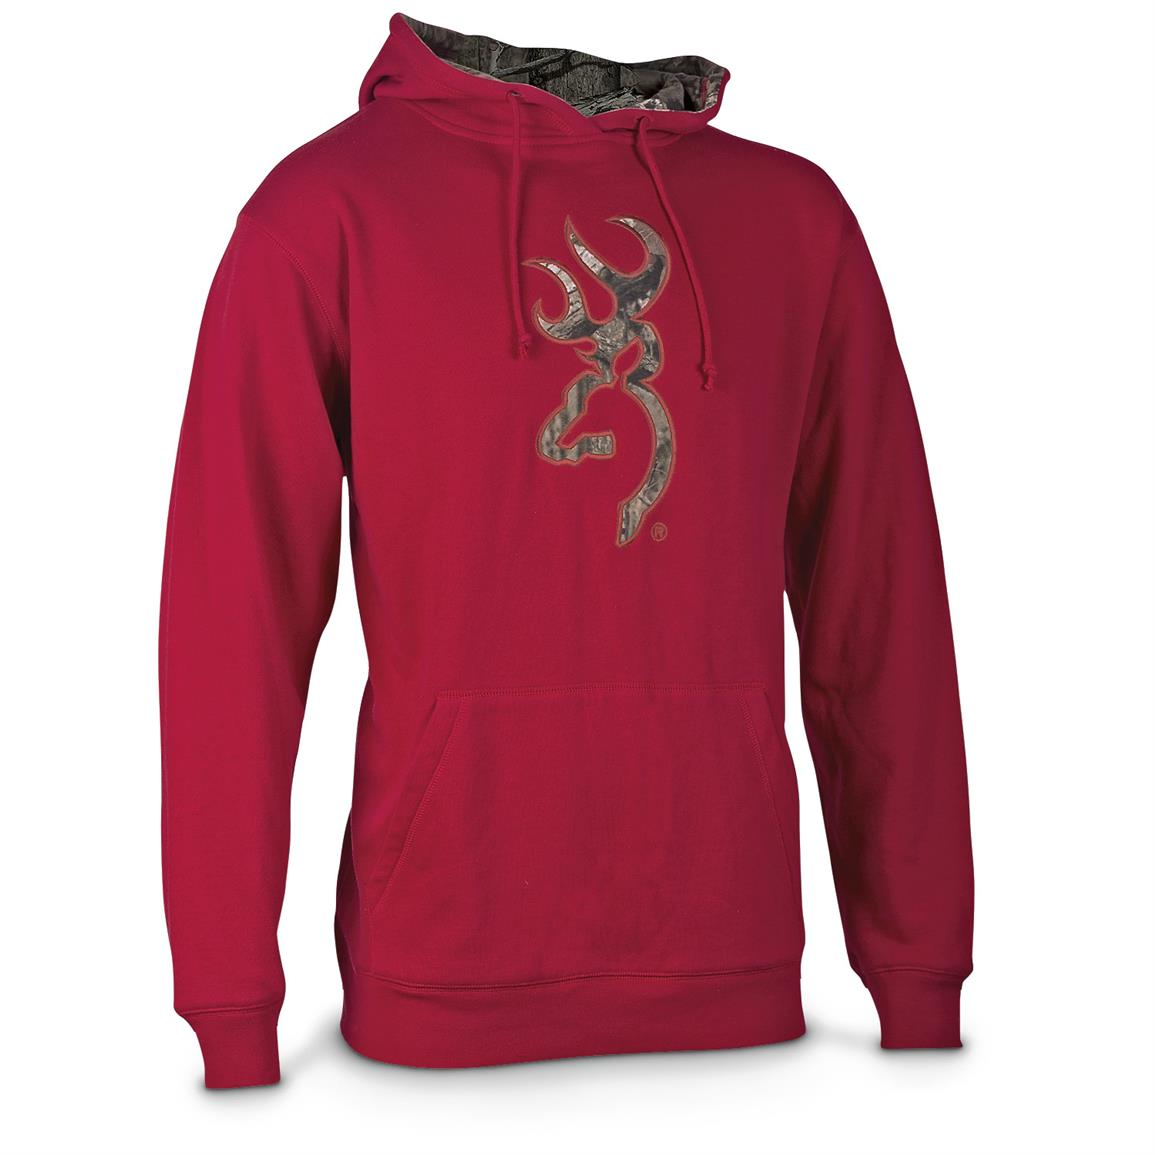 Browning Men's Applique Buckmark Hoodie Sweatshirt, Chili Pepper / Mossy Oak Infinity